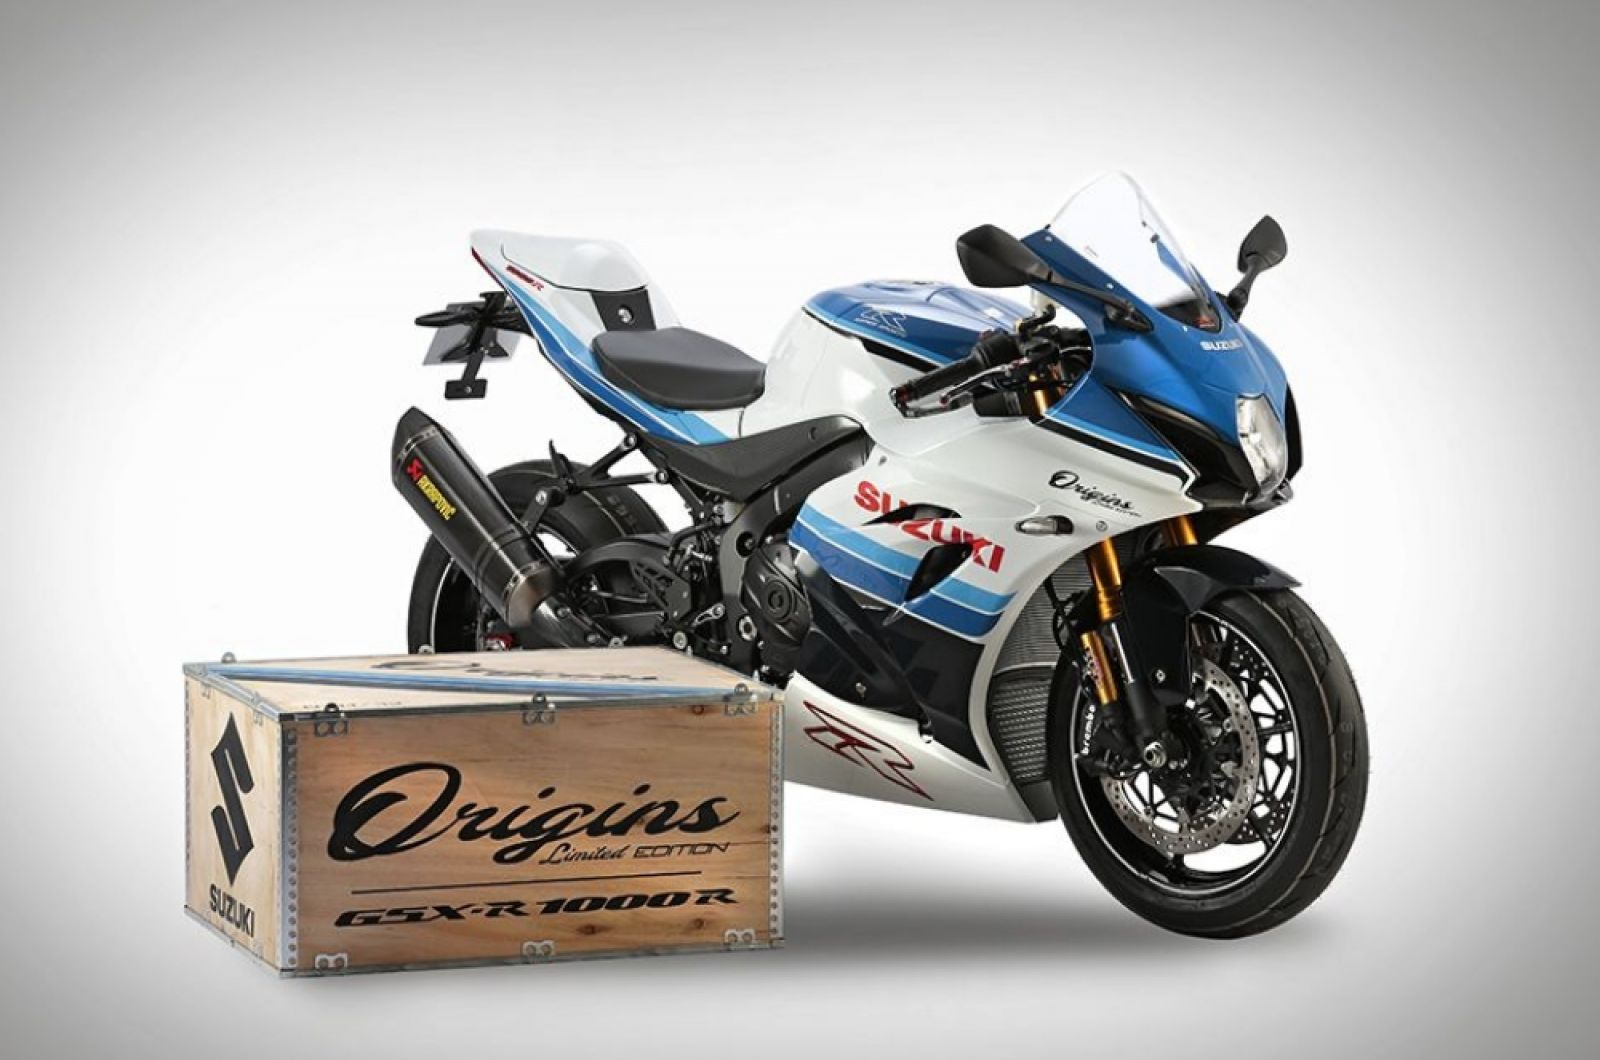 actualité - GSX-R1000R Origins - image d'illustration 10